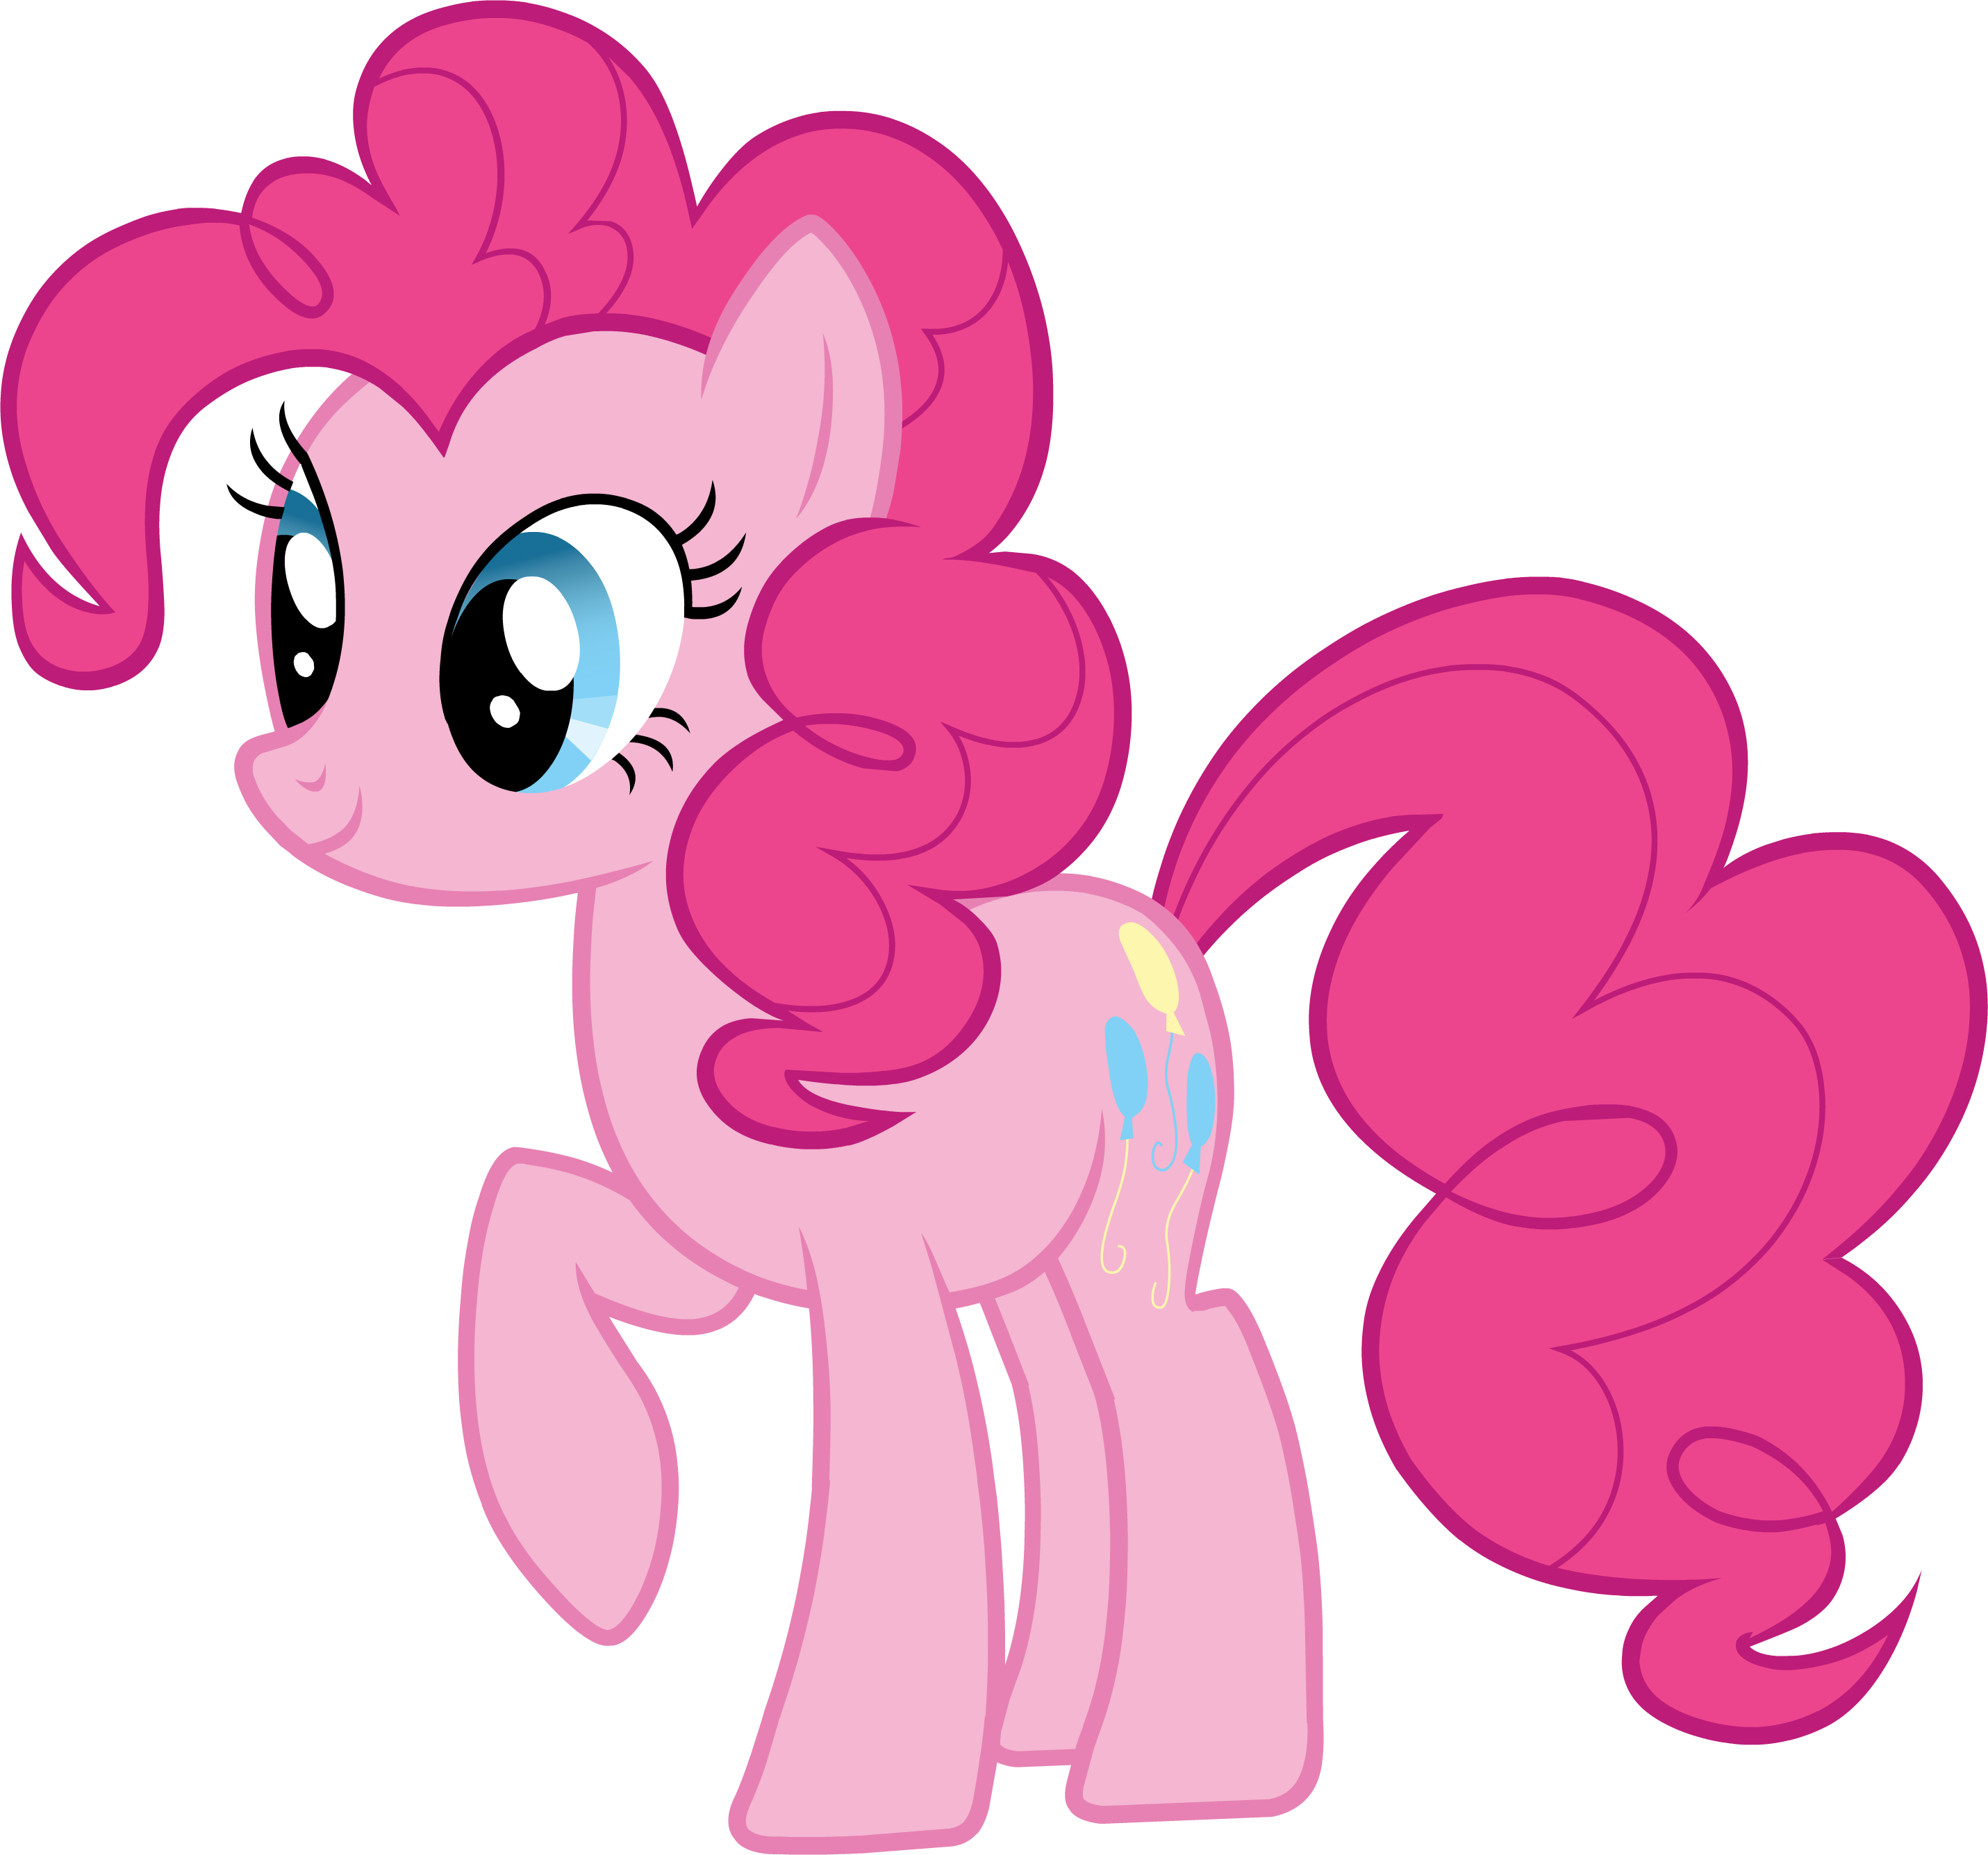 little pony png transparent little pony images #28027